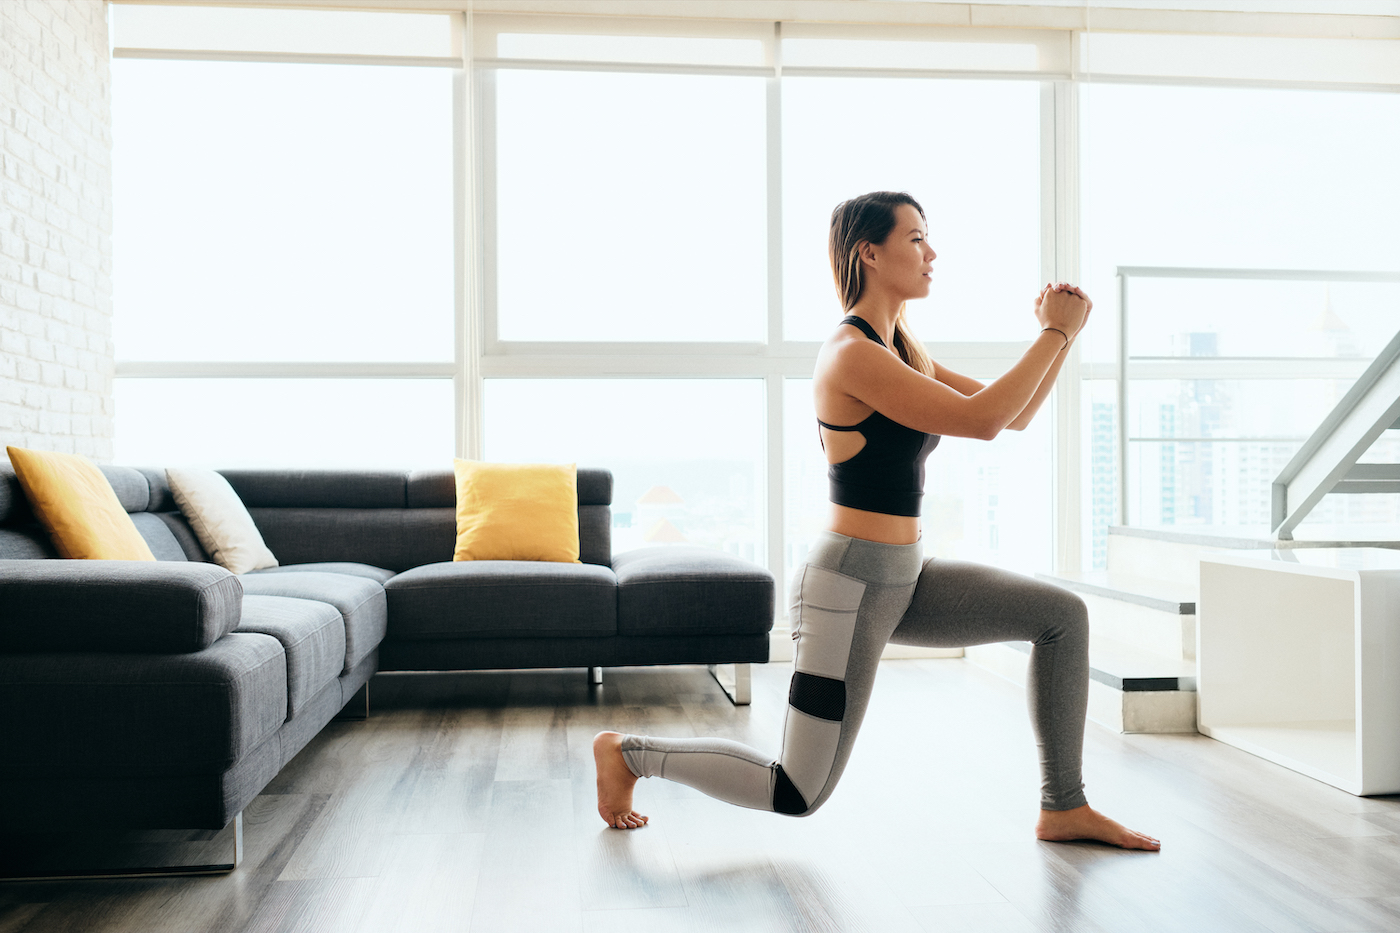 Thumbnail for No weights? No problem. These common household items double as workout equipment